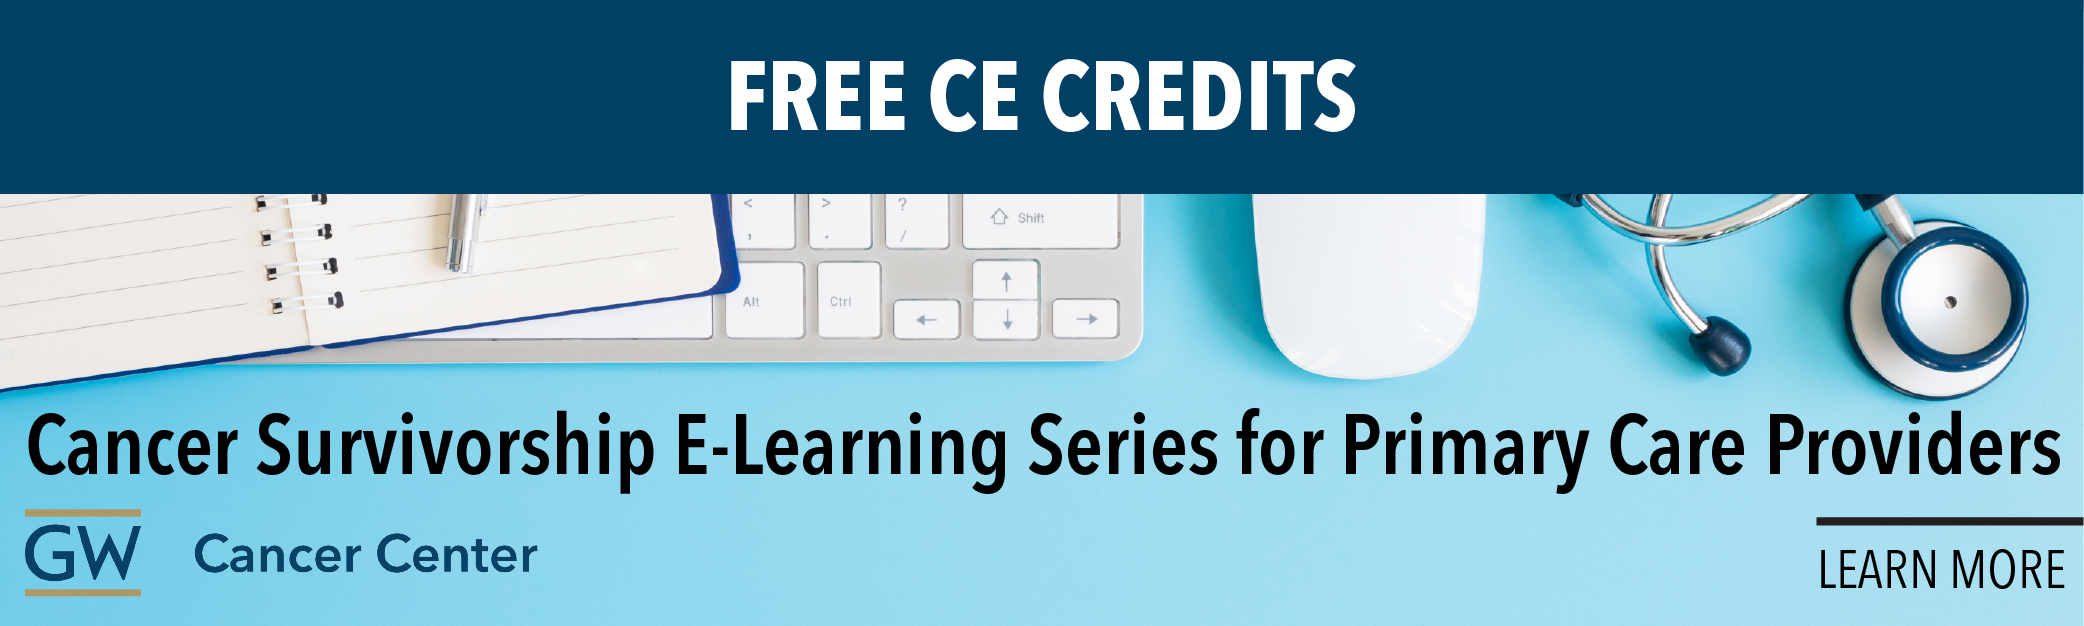 Free CE Credits: The Cancer Survivorship E-Learning Series - Learn more: http://bit.ly/PCPE-Learning